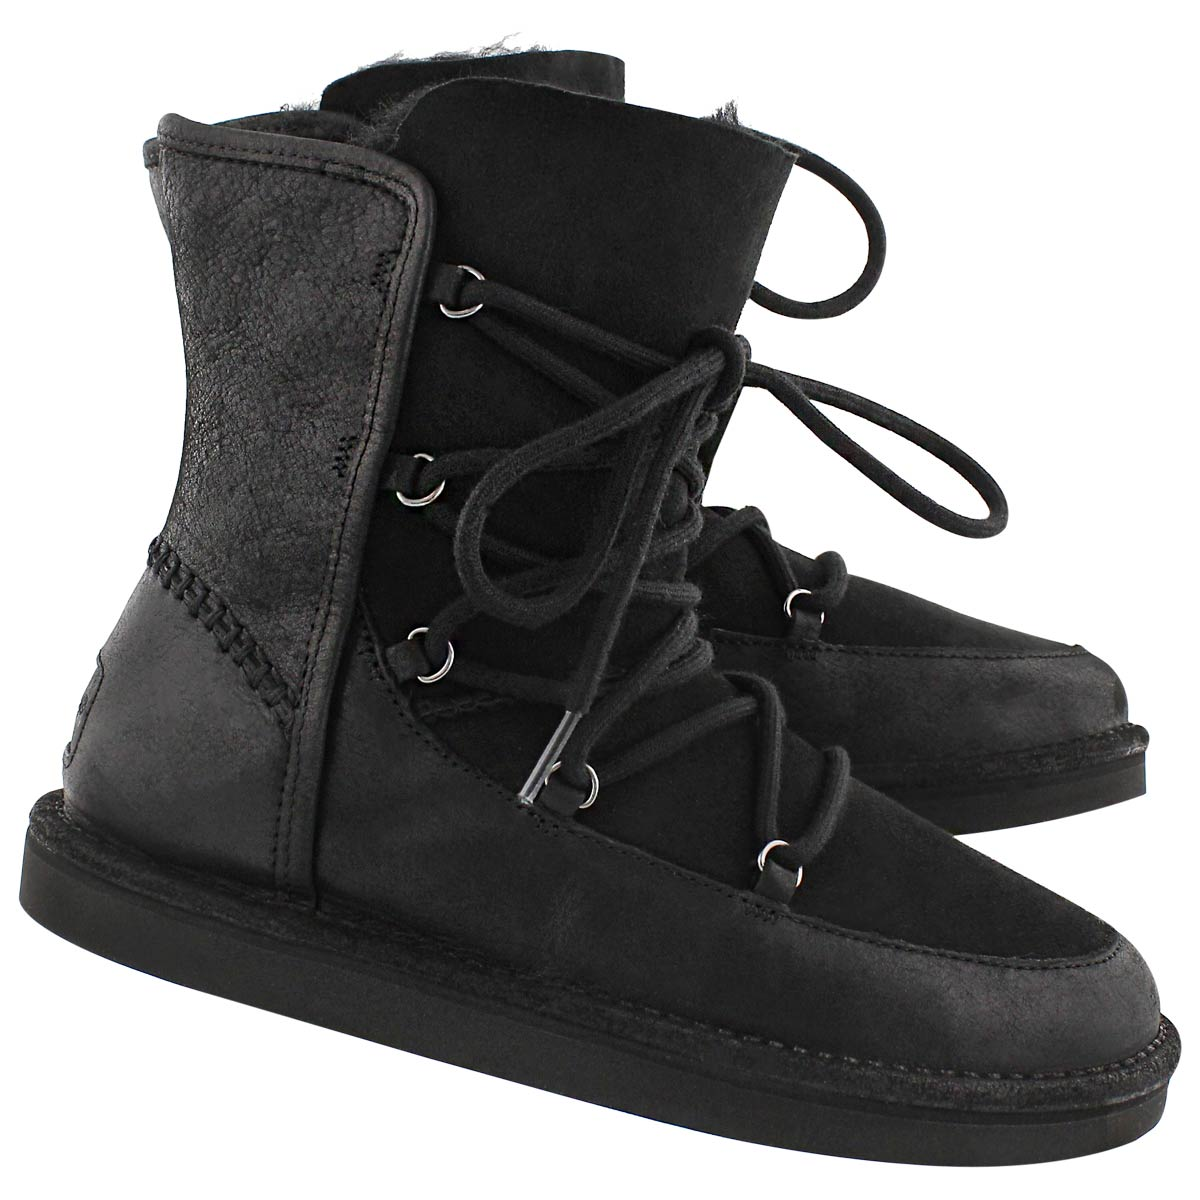 Lds Lodge black lace up casual boot